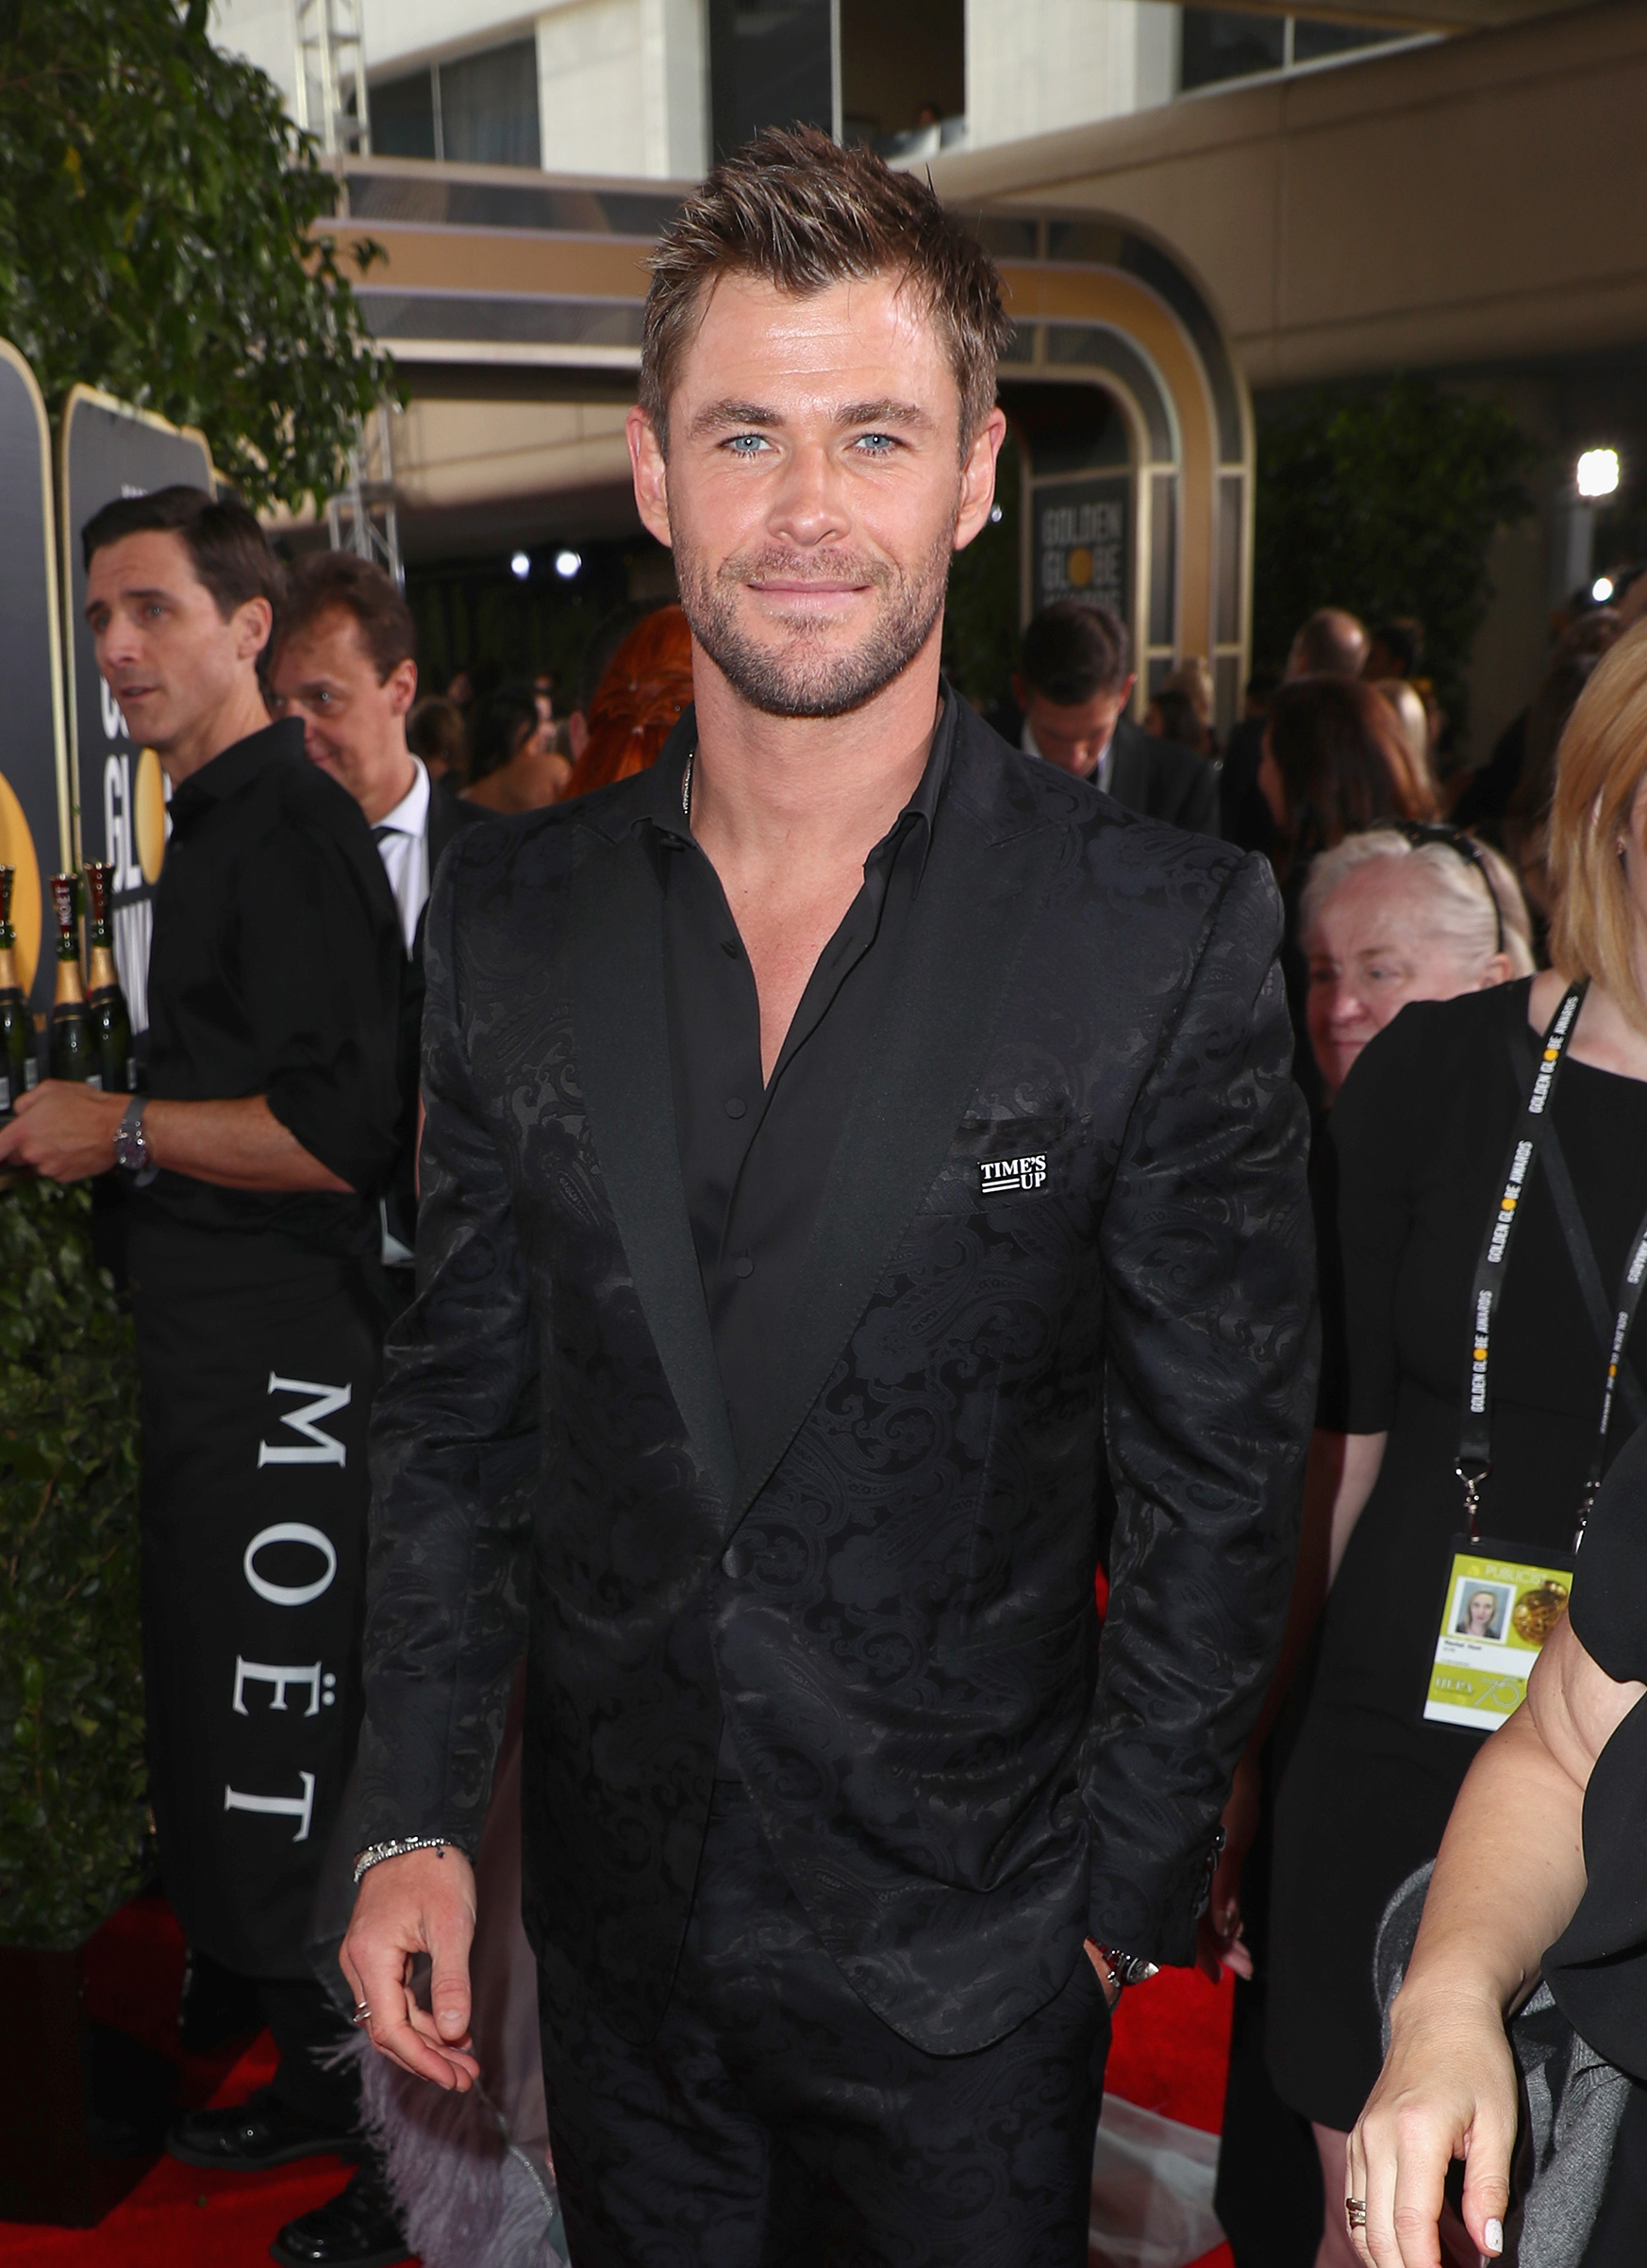 Actor Chris Hemsworth celebrates The 75th Annual Golden Globe Awards with Moet & Chandon at The Beverly Hilton Hotel on January 7, 2018 in Beverly Hills, California.